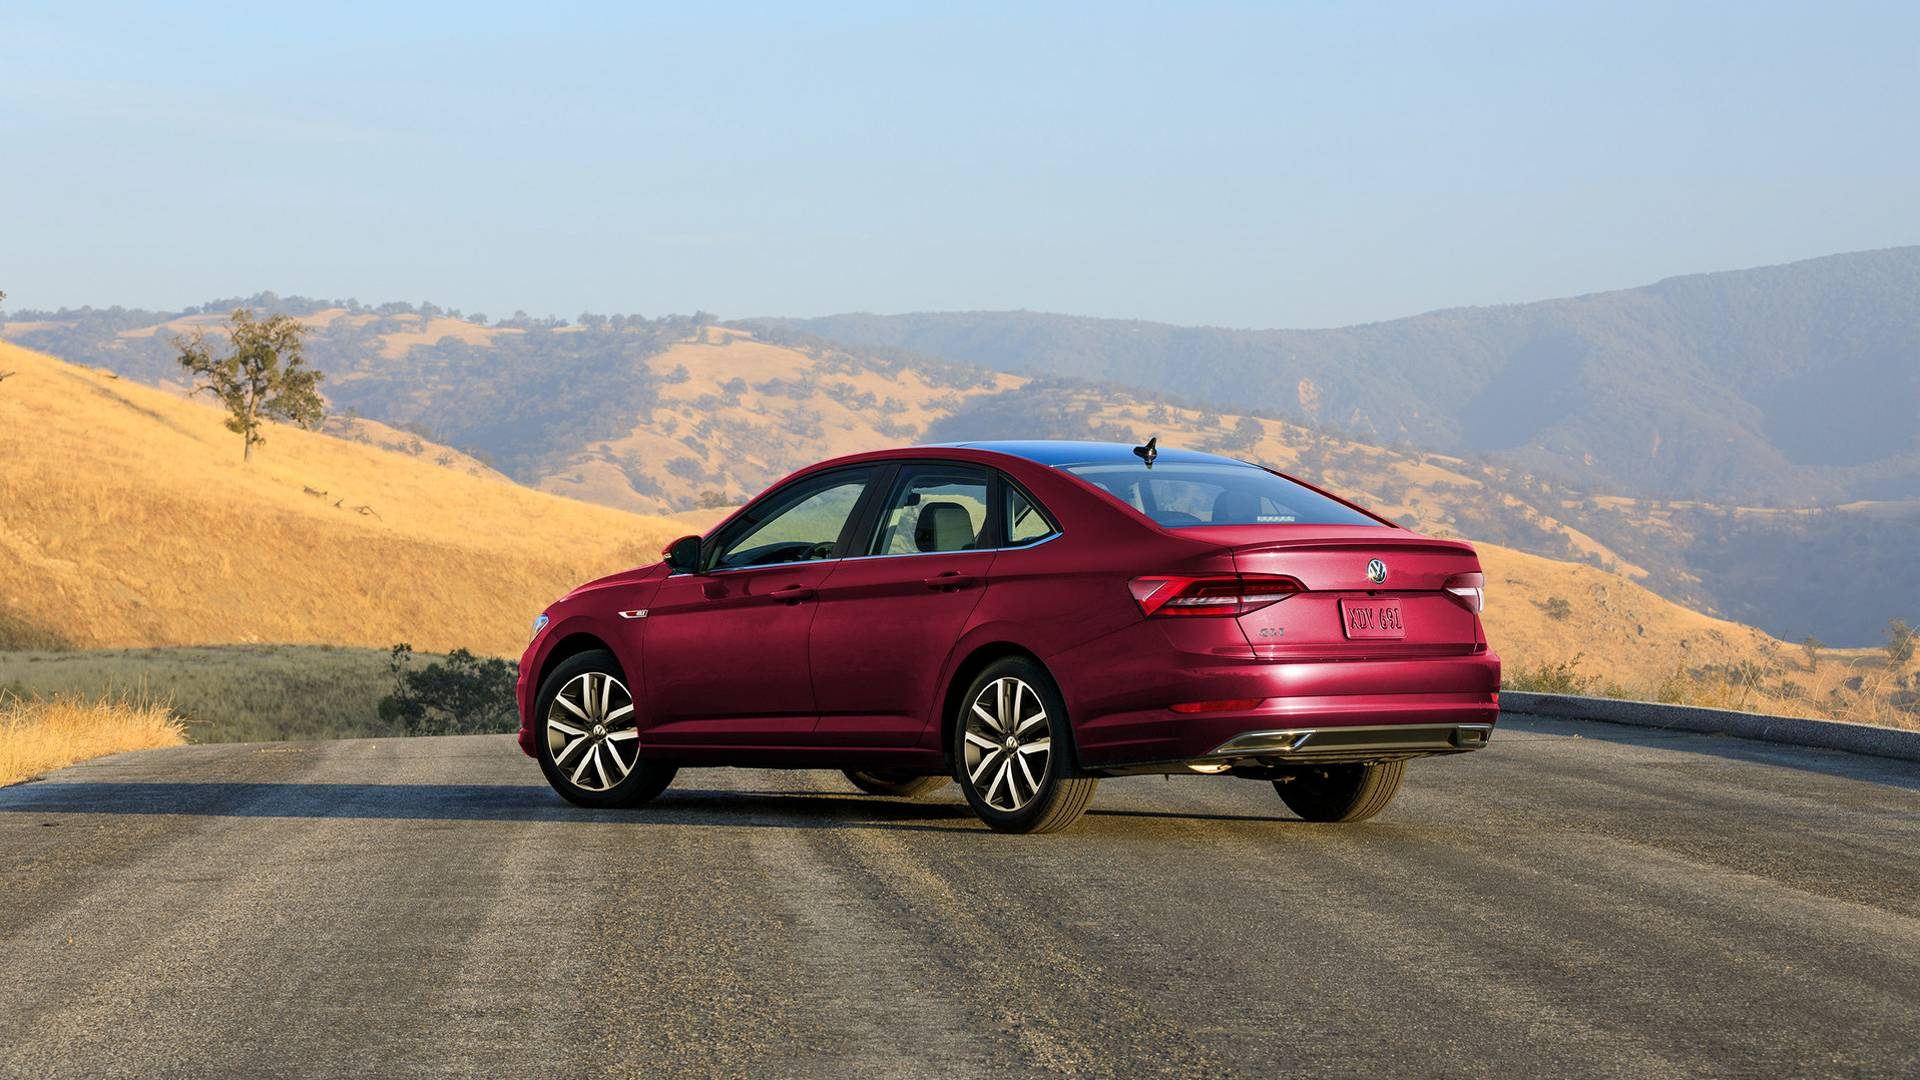 34 The Best 2020 Vw Jetta Gli Price Design and Review